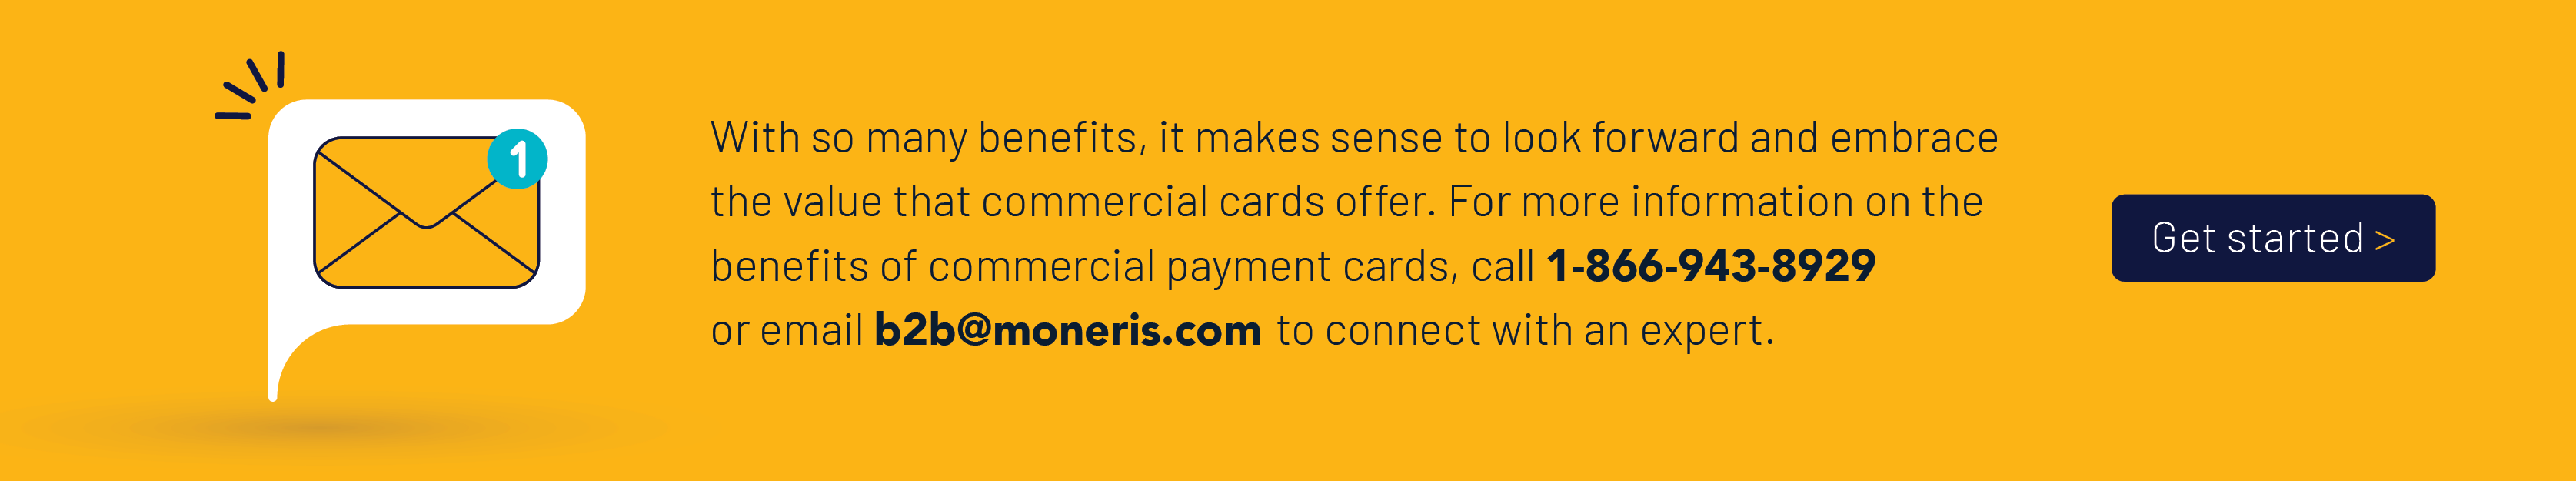 With so many benefits, it makes sense to look forward and embrace the value that commercial cards offer. For more information on the benefits of commercial payment cards, call 1-866-943-8929 or email b2b@moneris.com to connect with an expert.